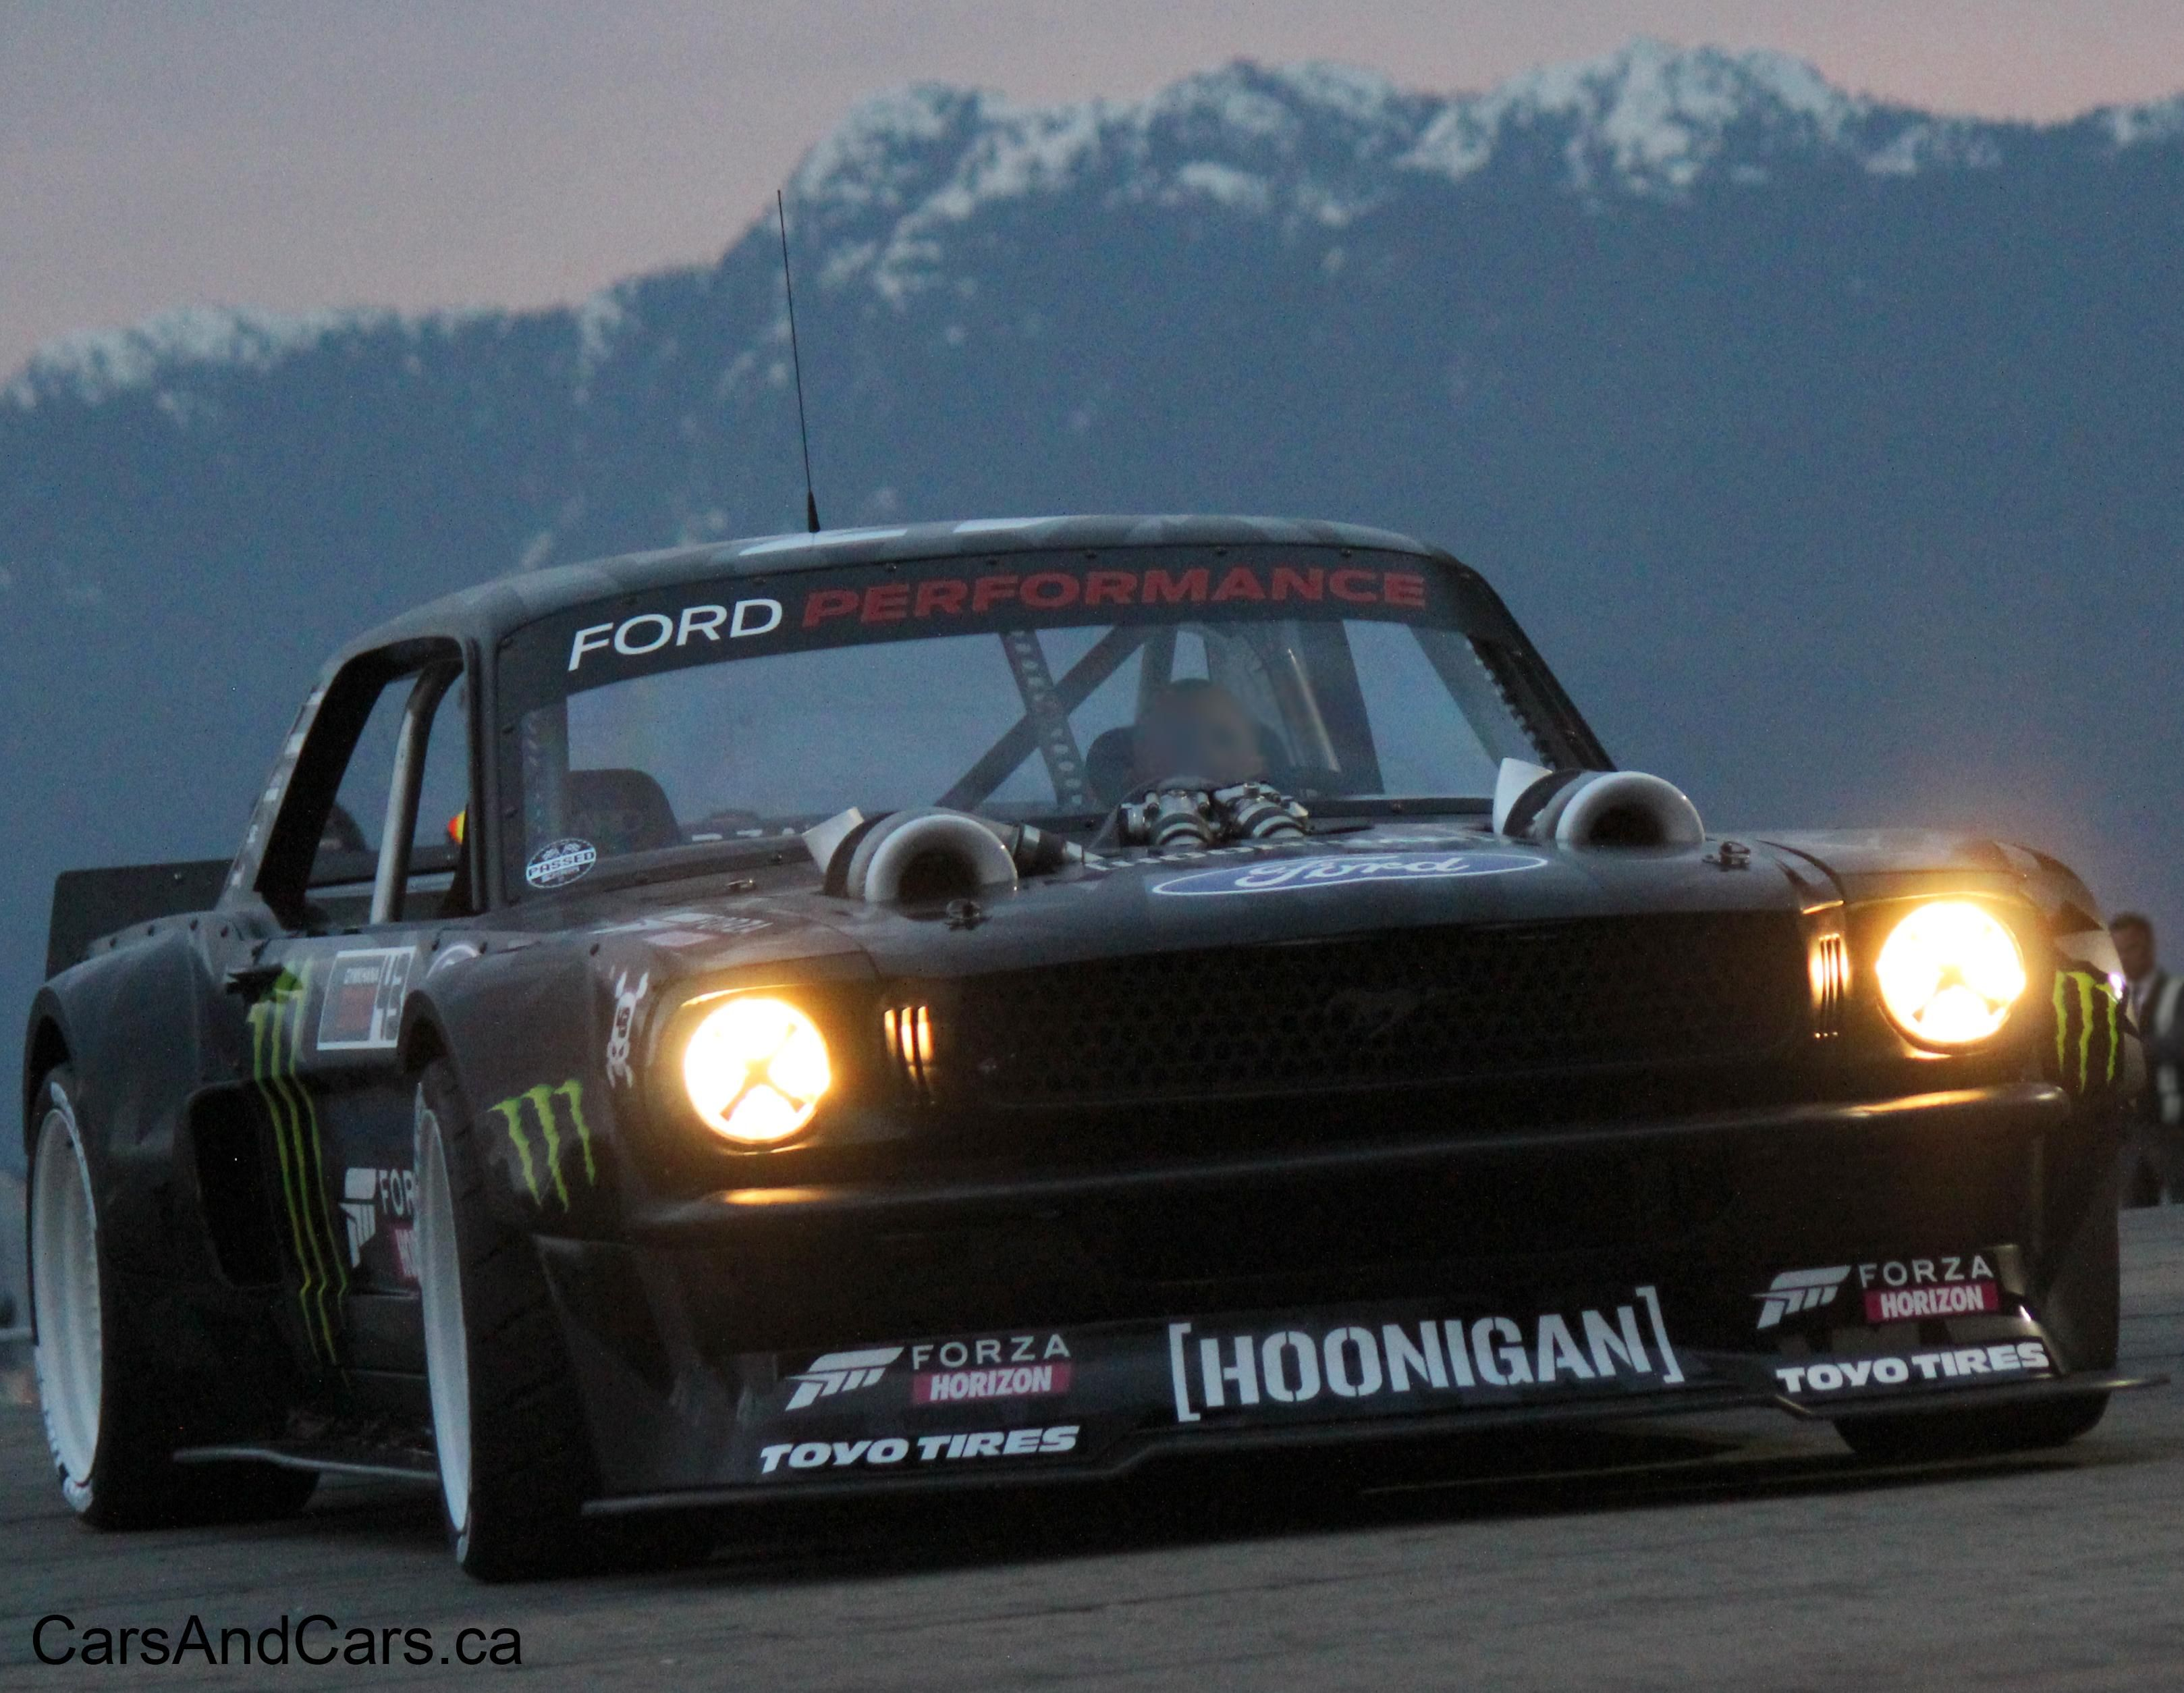 Pin By Shadow Playz On Hoonicorn In 2020 Ken Block Ford Mustang